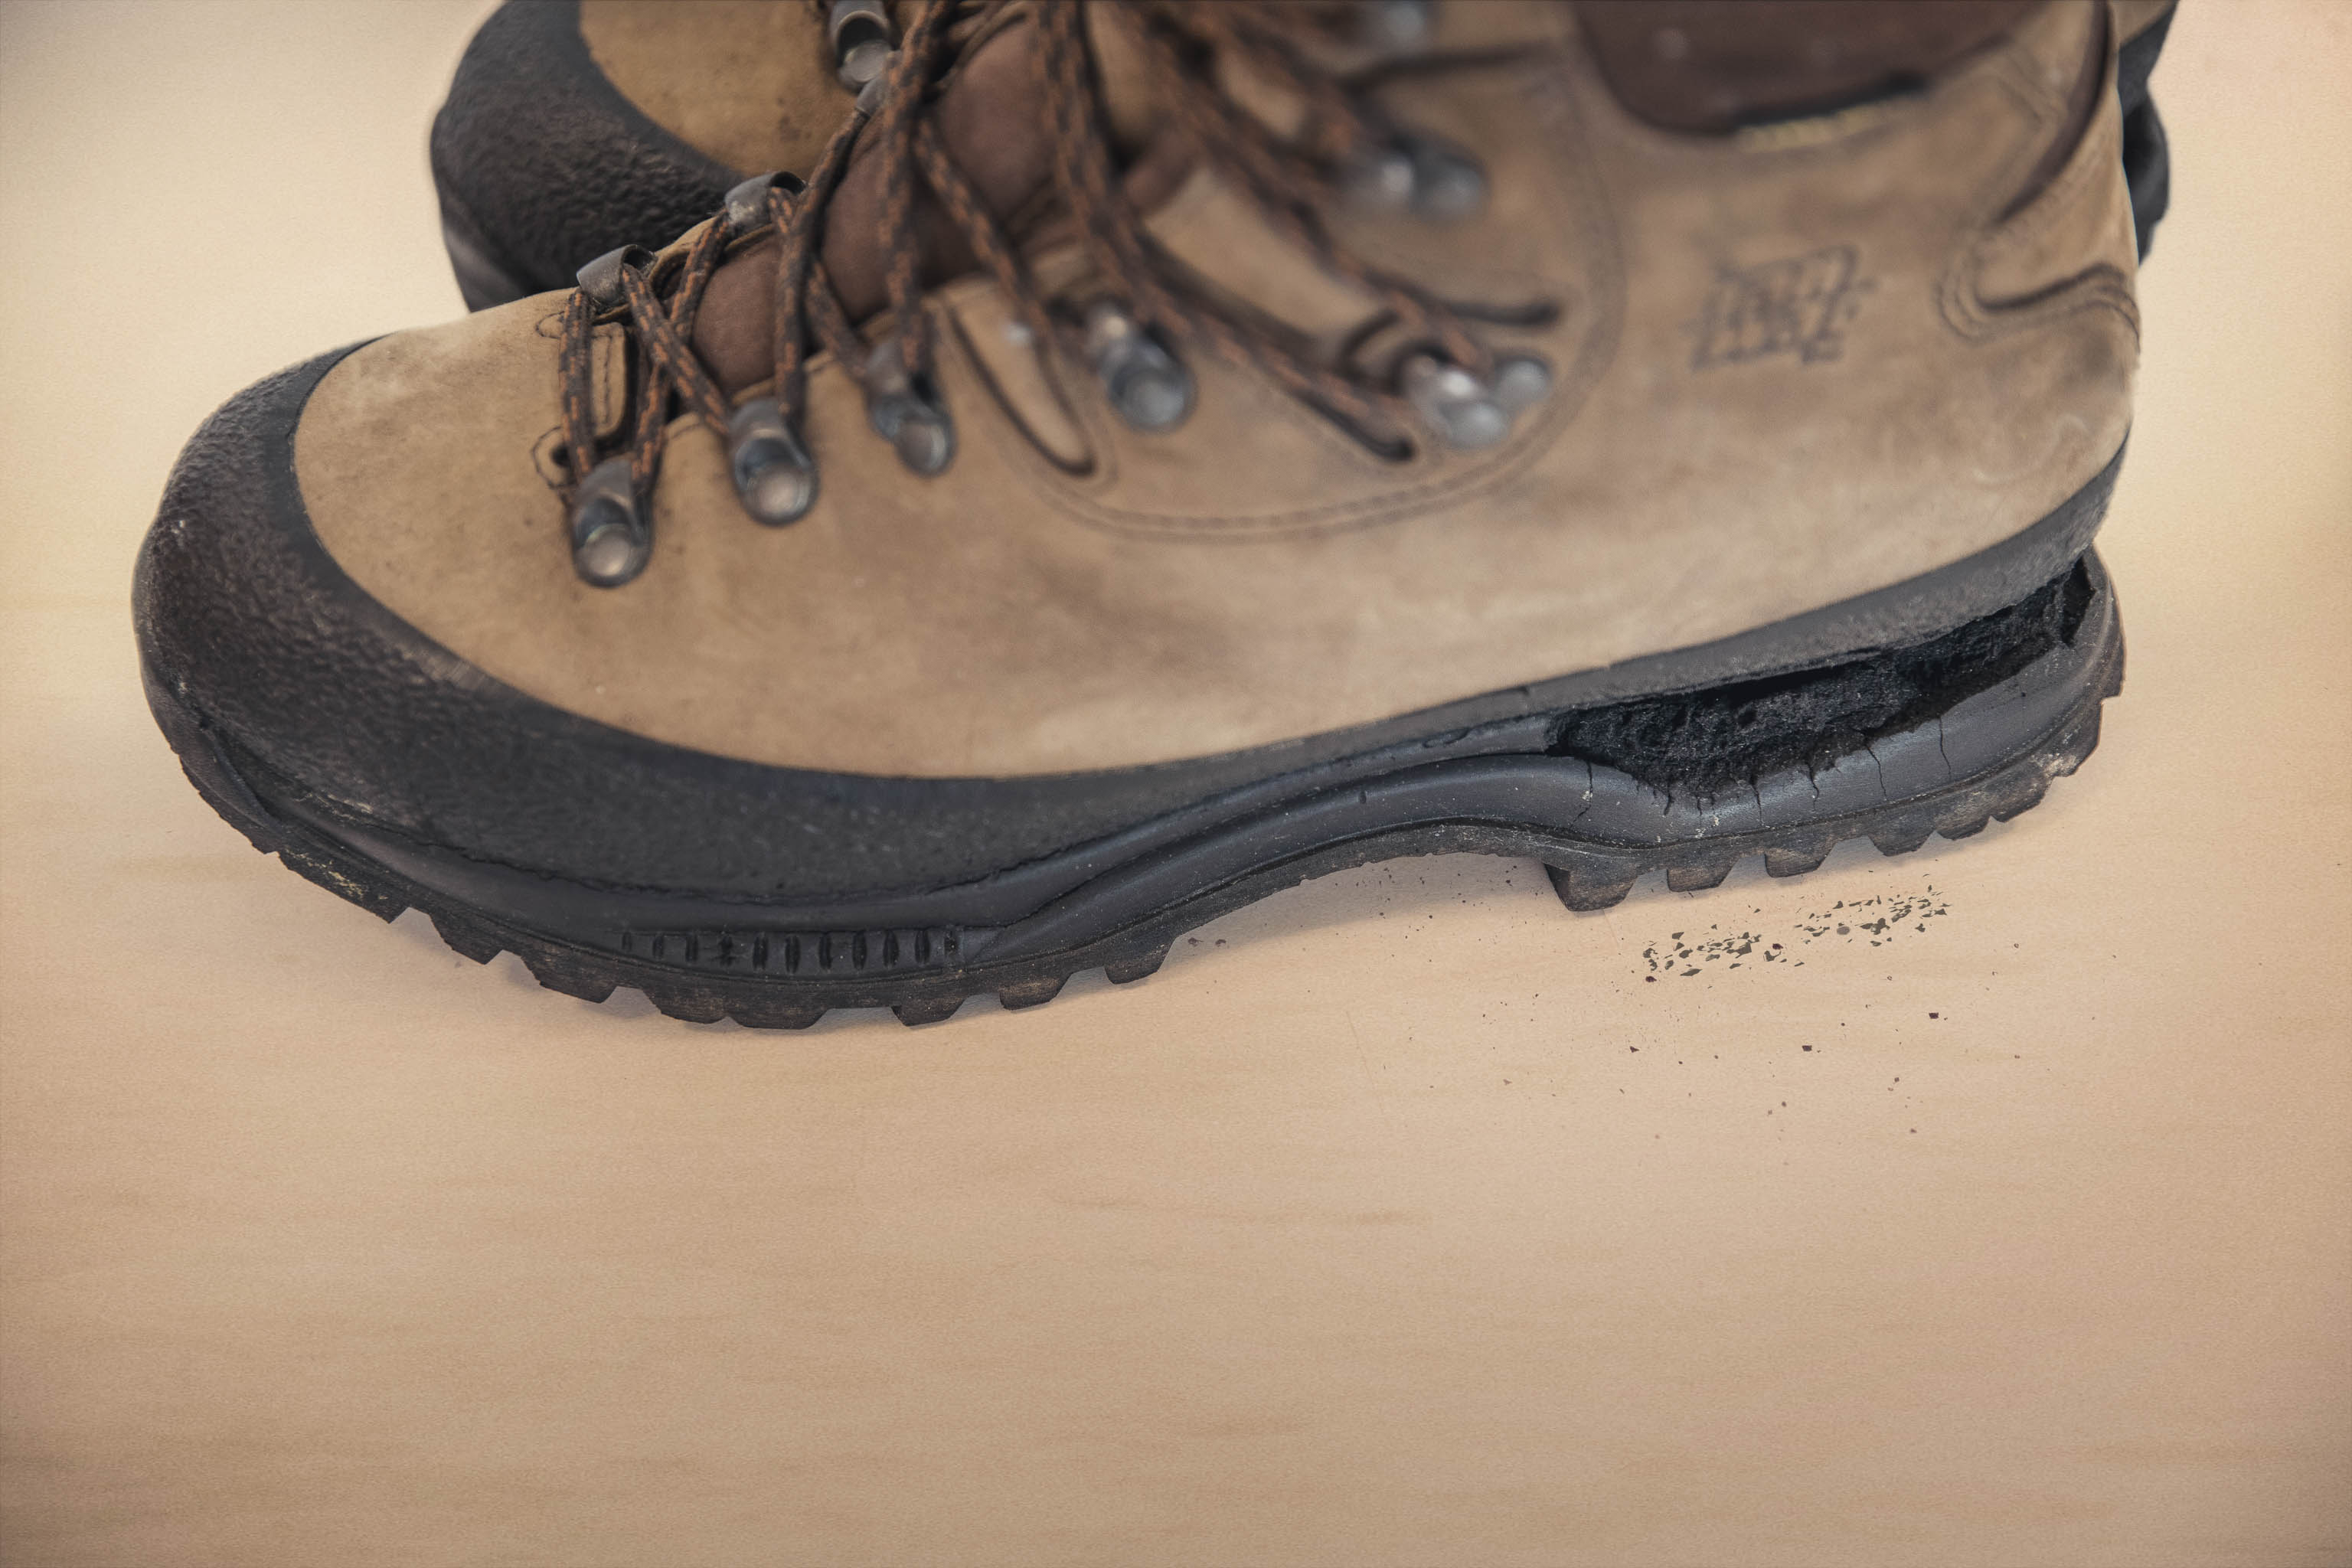 HANWAG Hiking boot sole separation